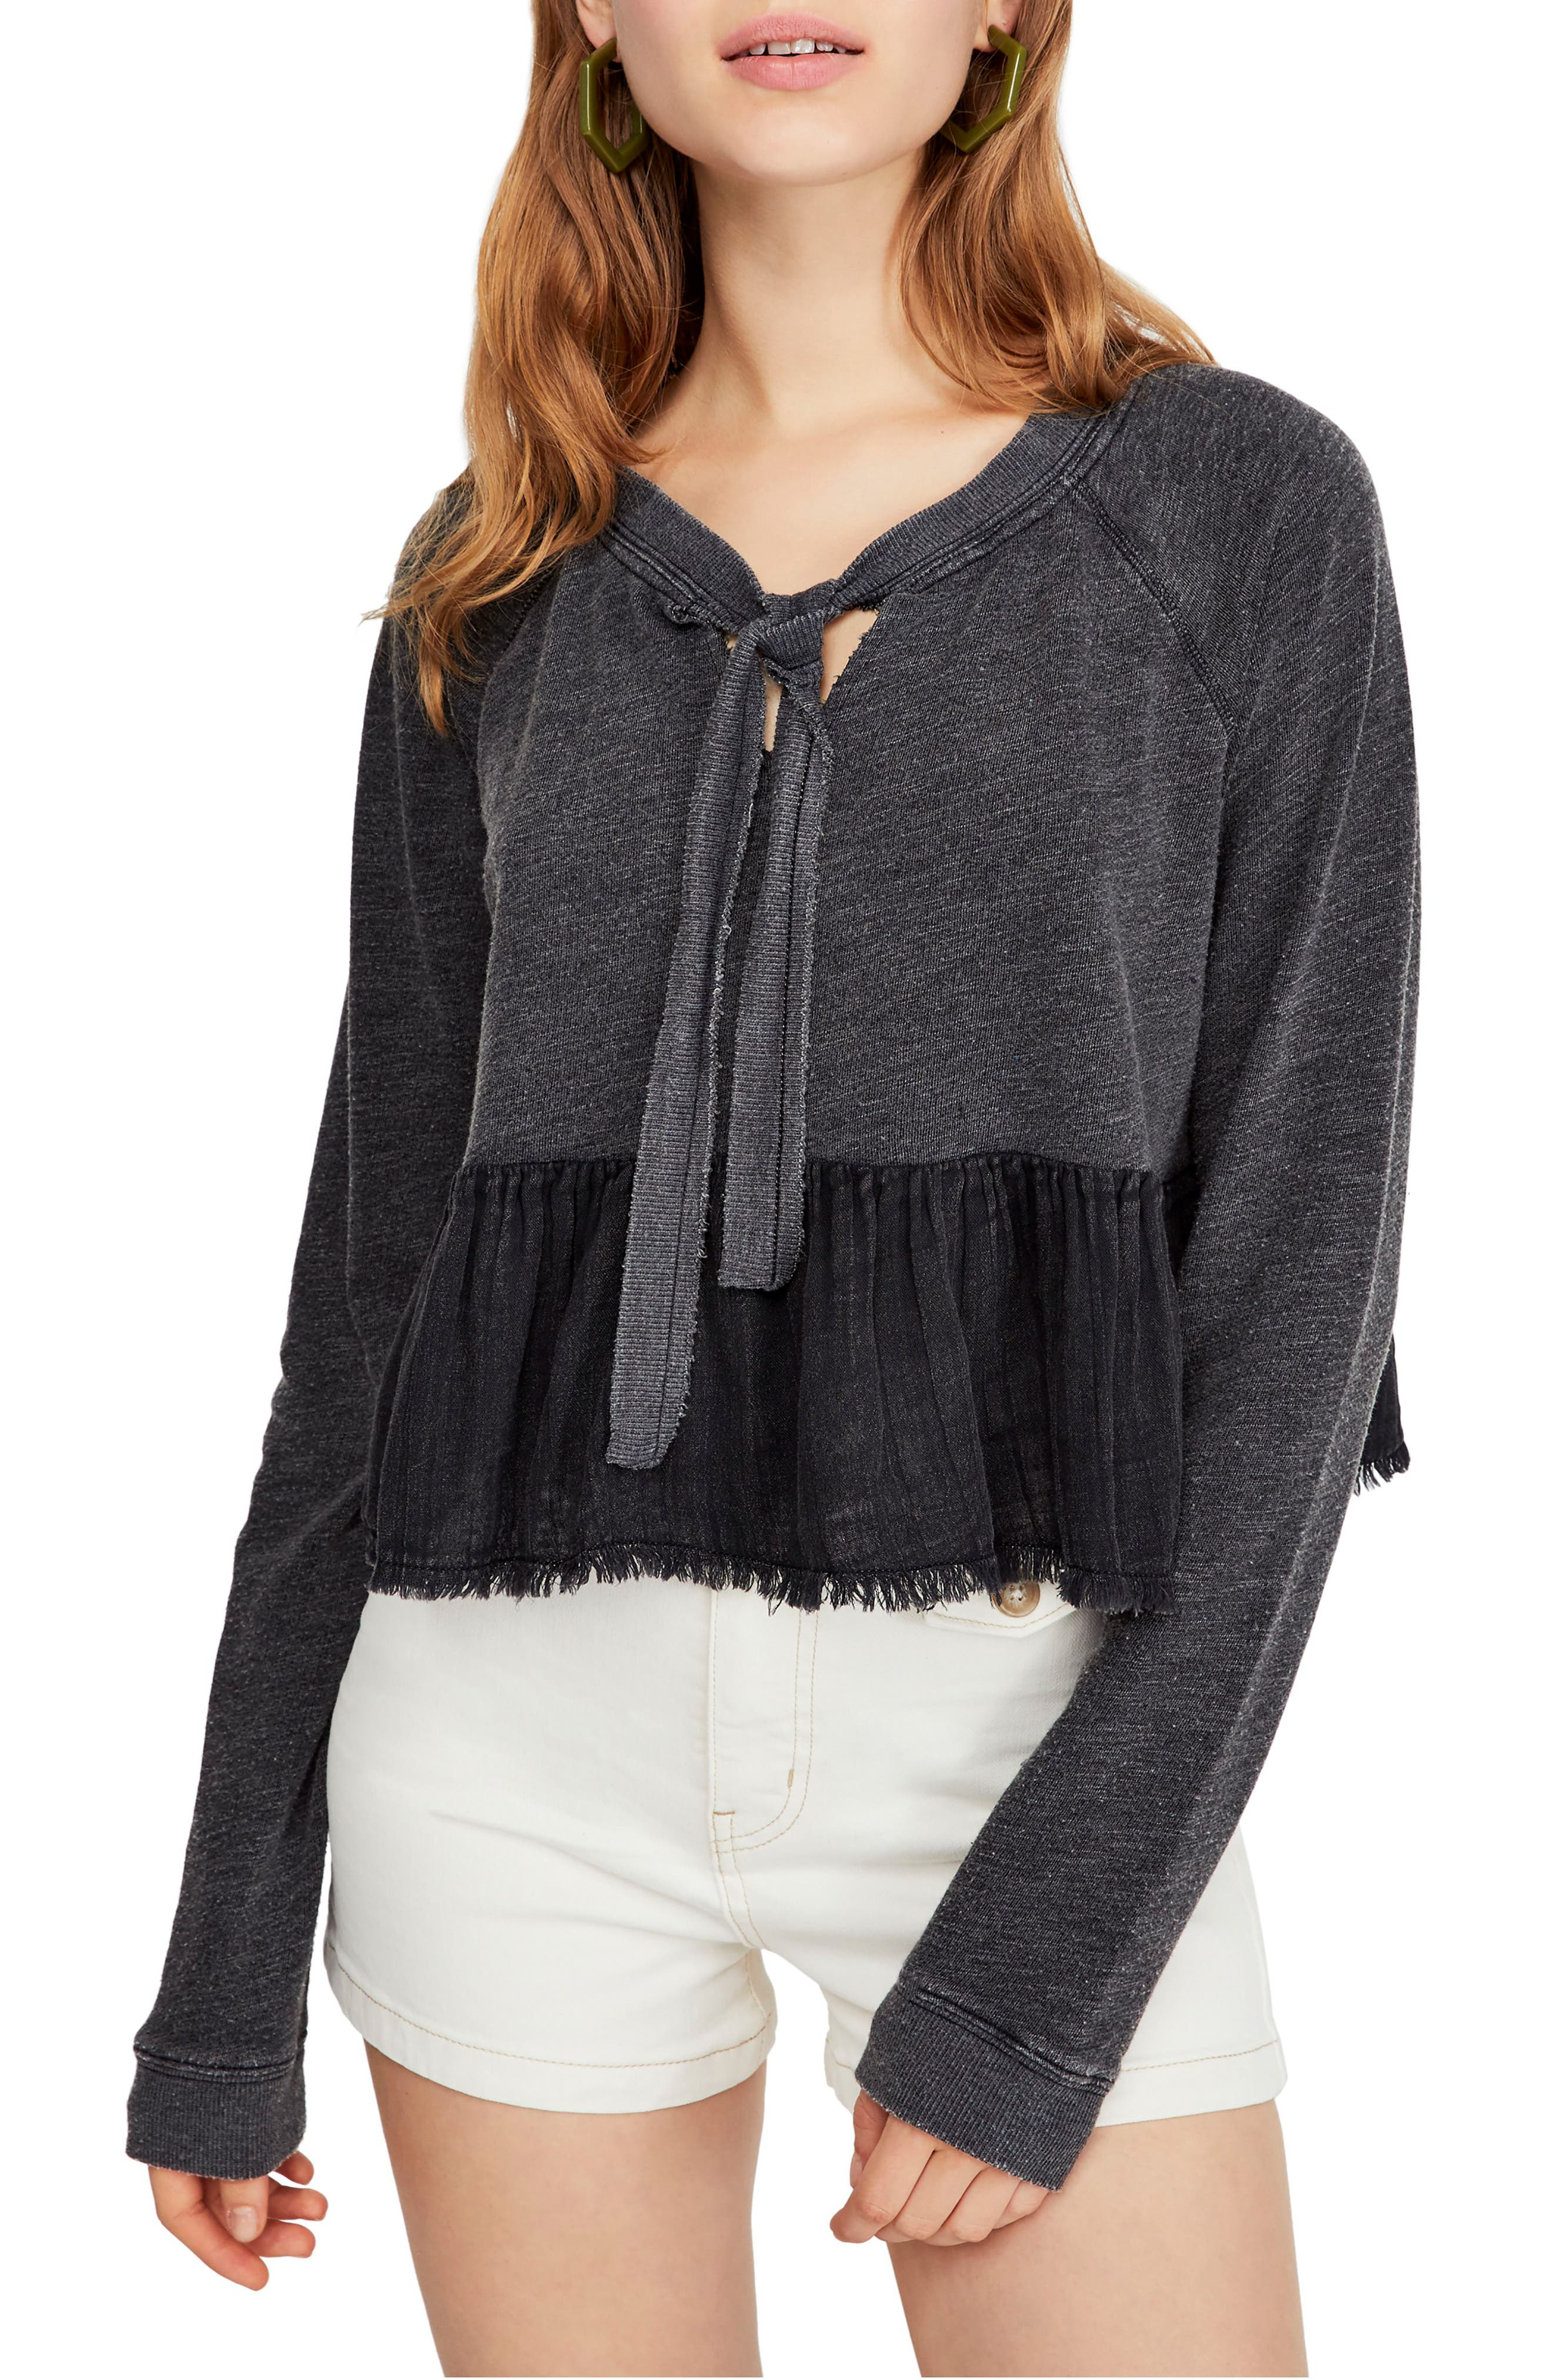 FREE PEOPLE, Sweet Jane Pullover, Main thumbnail 1, color, 001